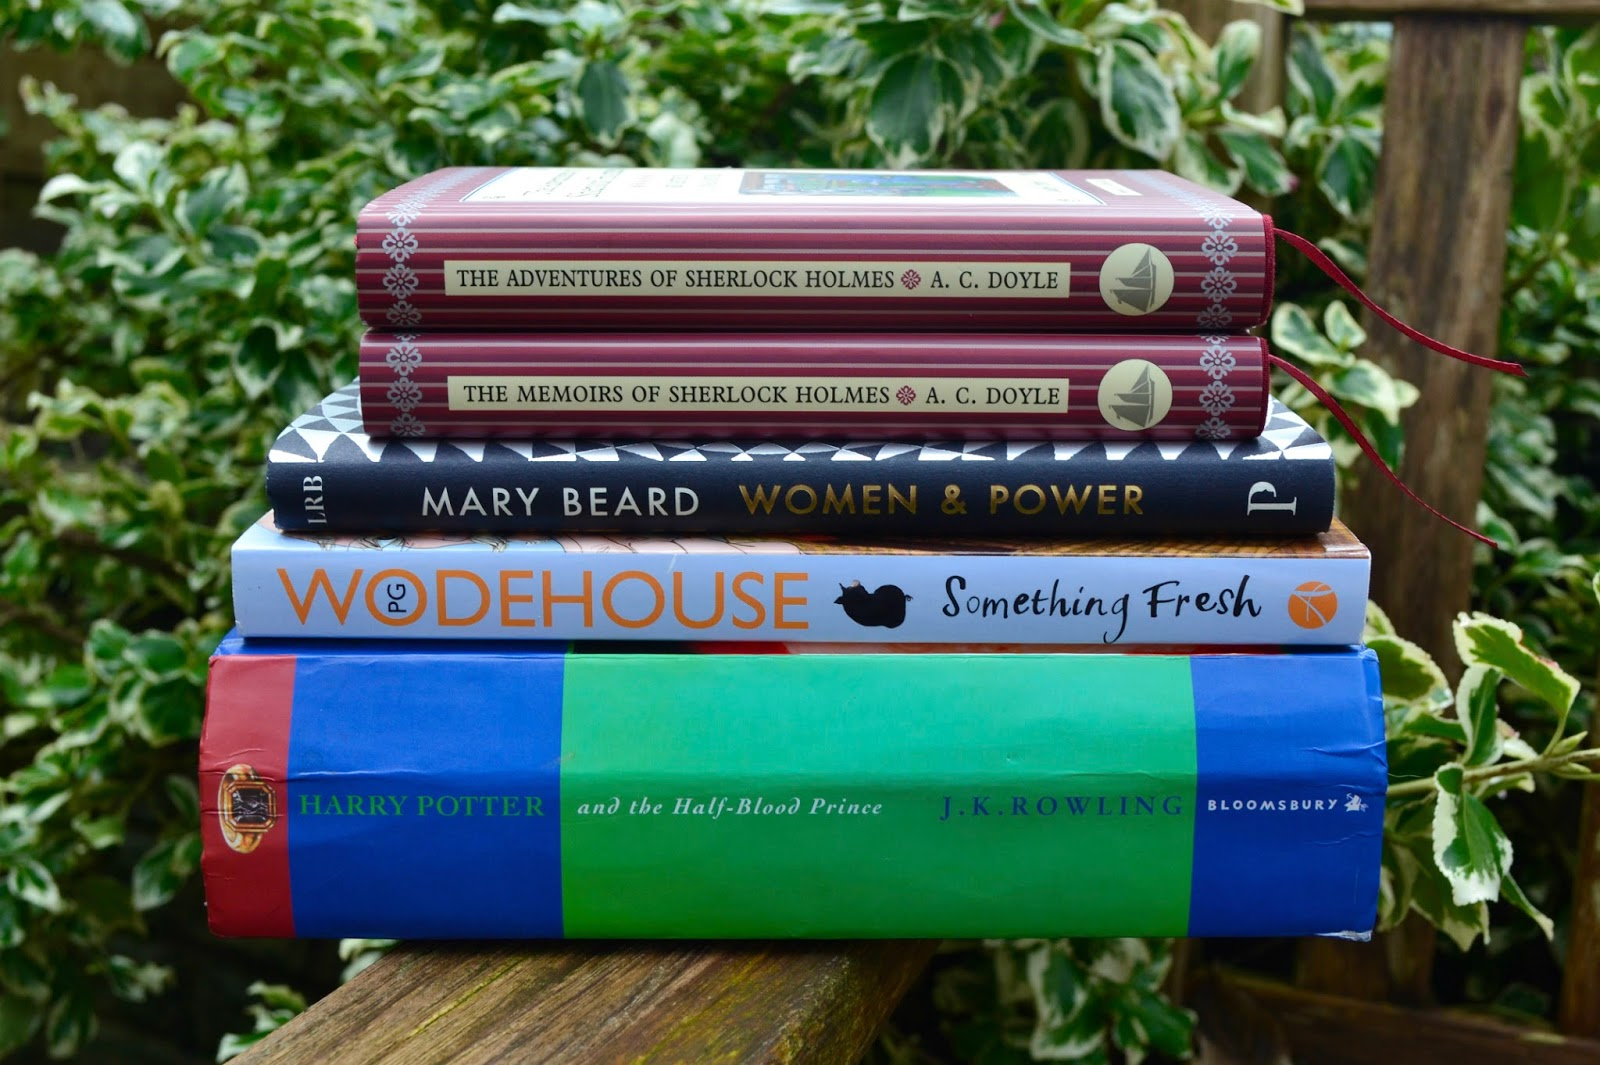 Pile of books: The Adventures of Sherlock Holmes and The Memoirs of Sherlock Holmes by Sir Arthur Conan Doyle, Women and Power: A Manifesto by Mary Beard, Something Fresh by P.G. Wodehouse and Harry Potter and the Half-Blood Prince by JK Rowling